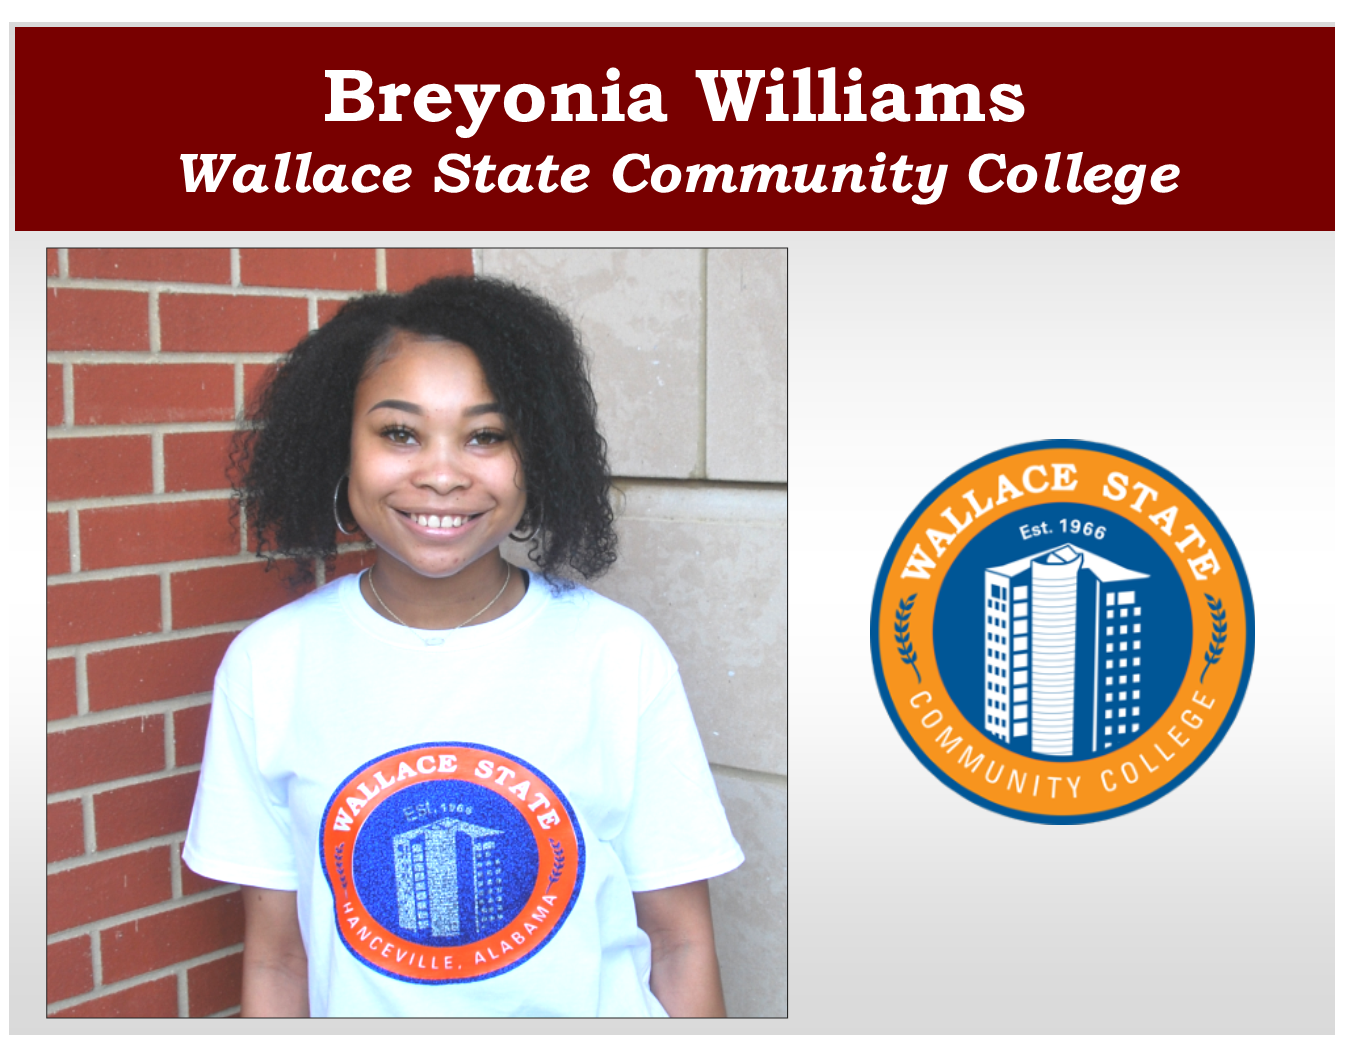 Breyonia Williams